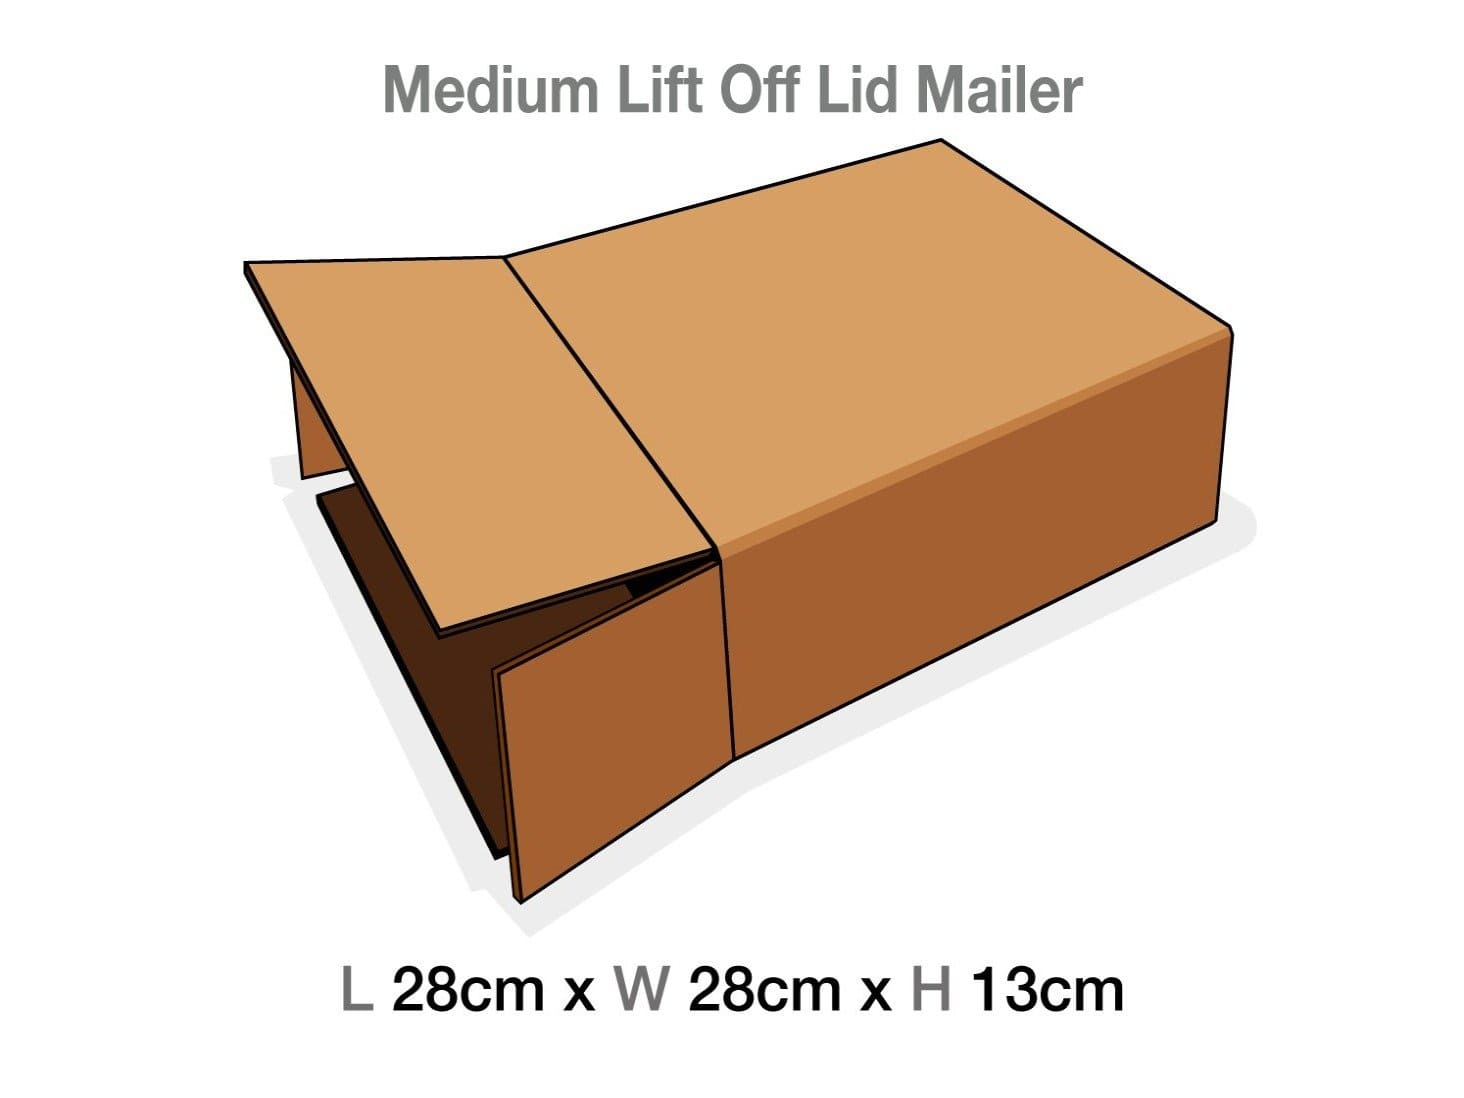 Medium Lift Off Lid Corrugated Protective Mailing Carton